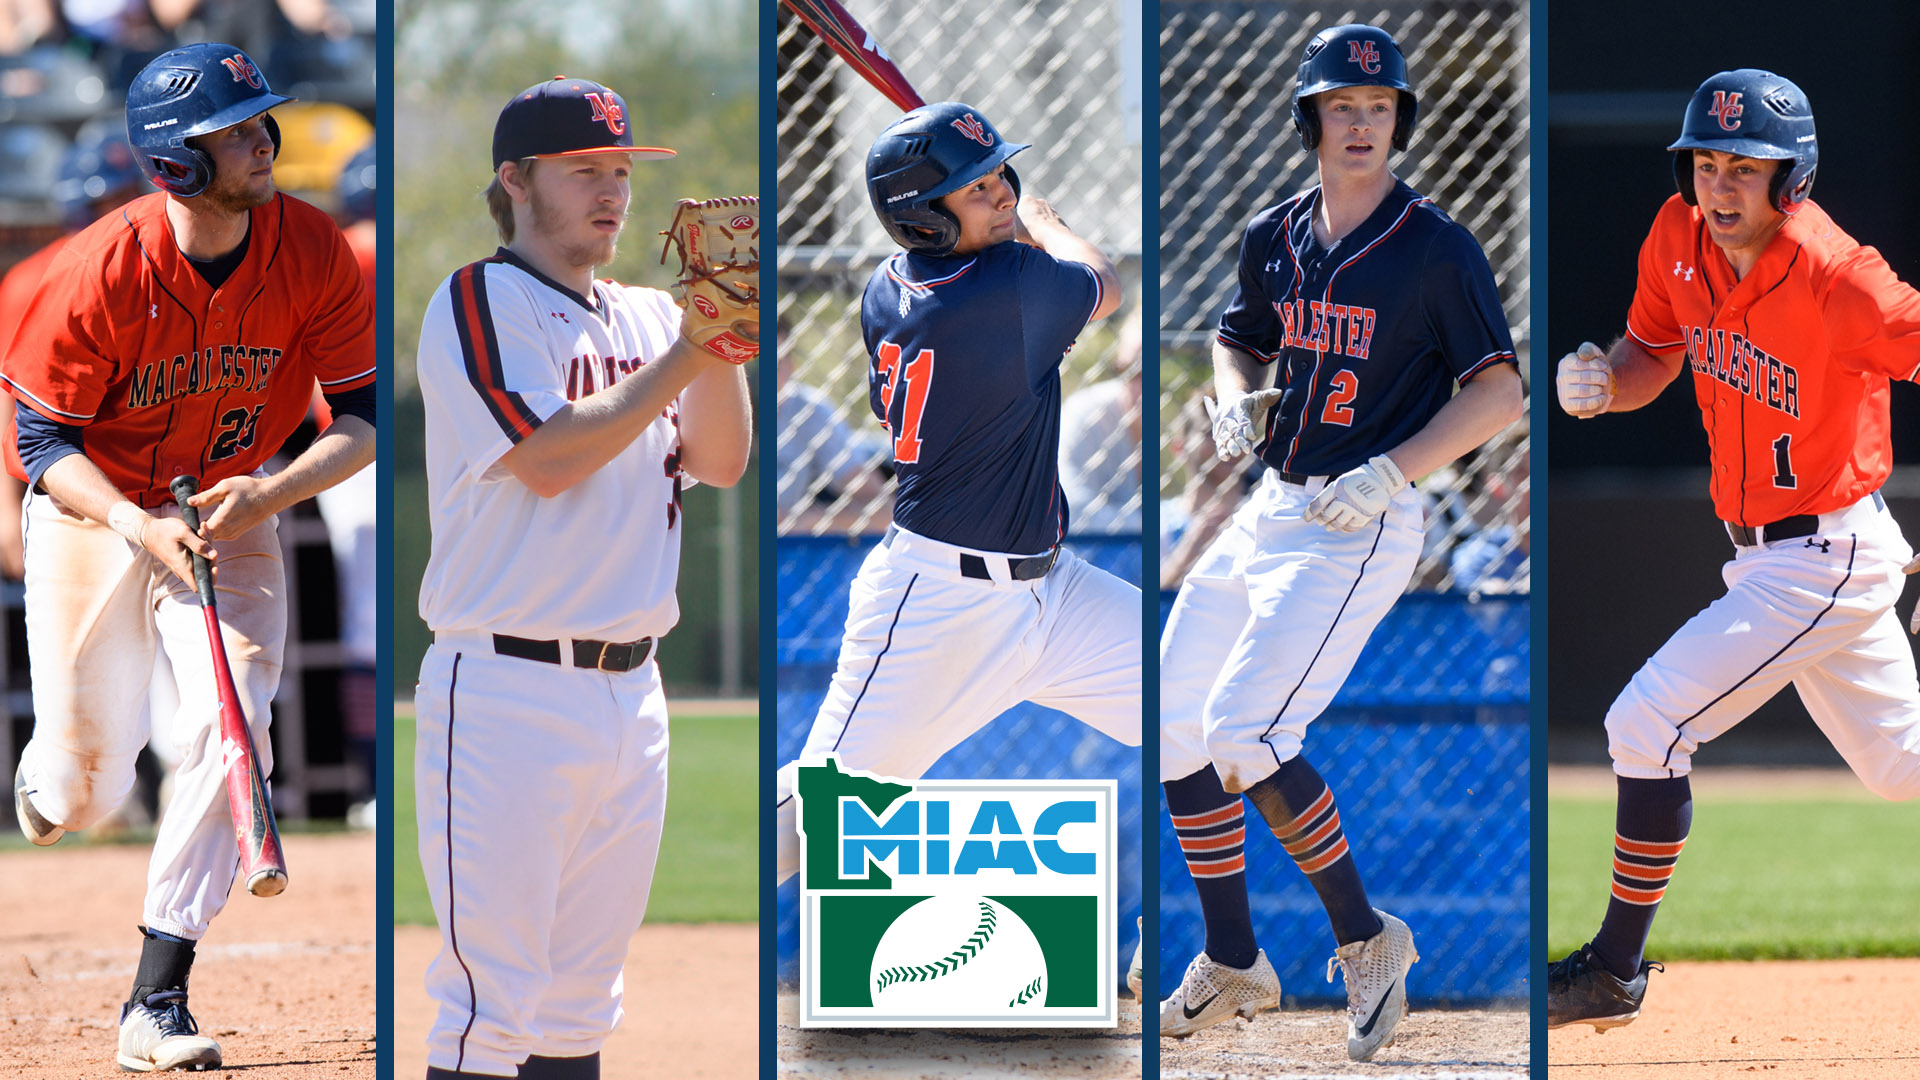 Baseball Graham Low Repeats As Miac Player Of The Year Macalester College Athletics